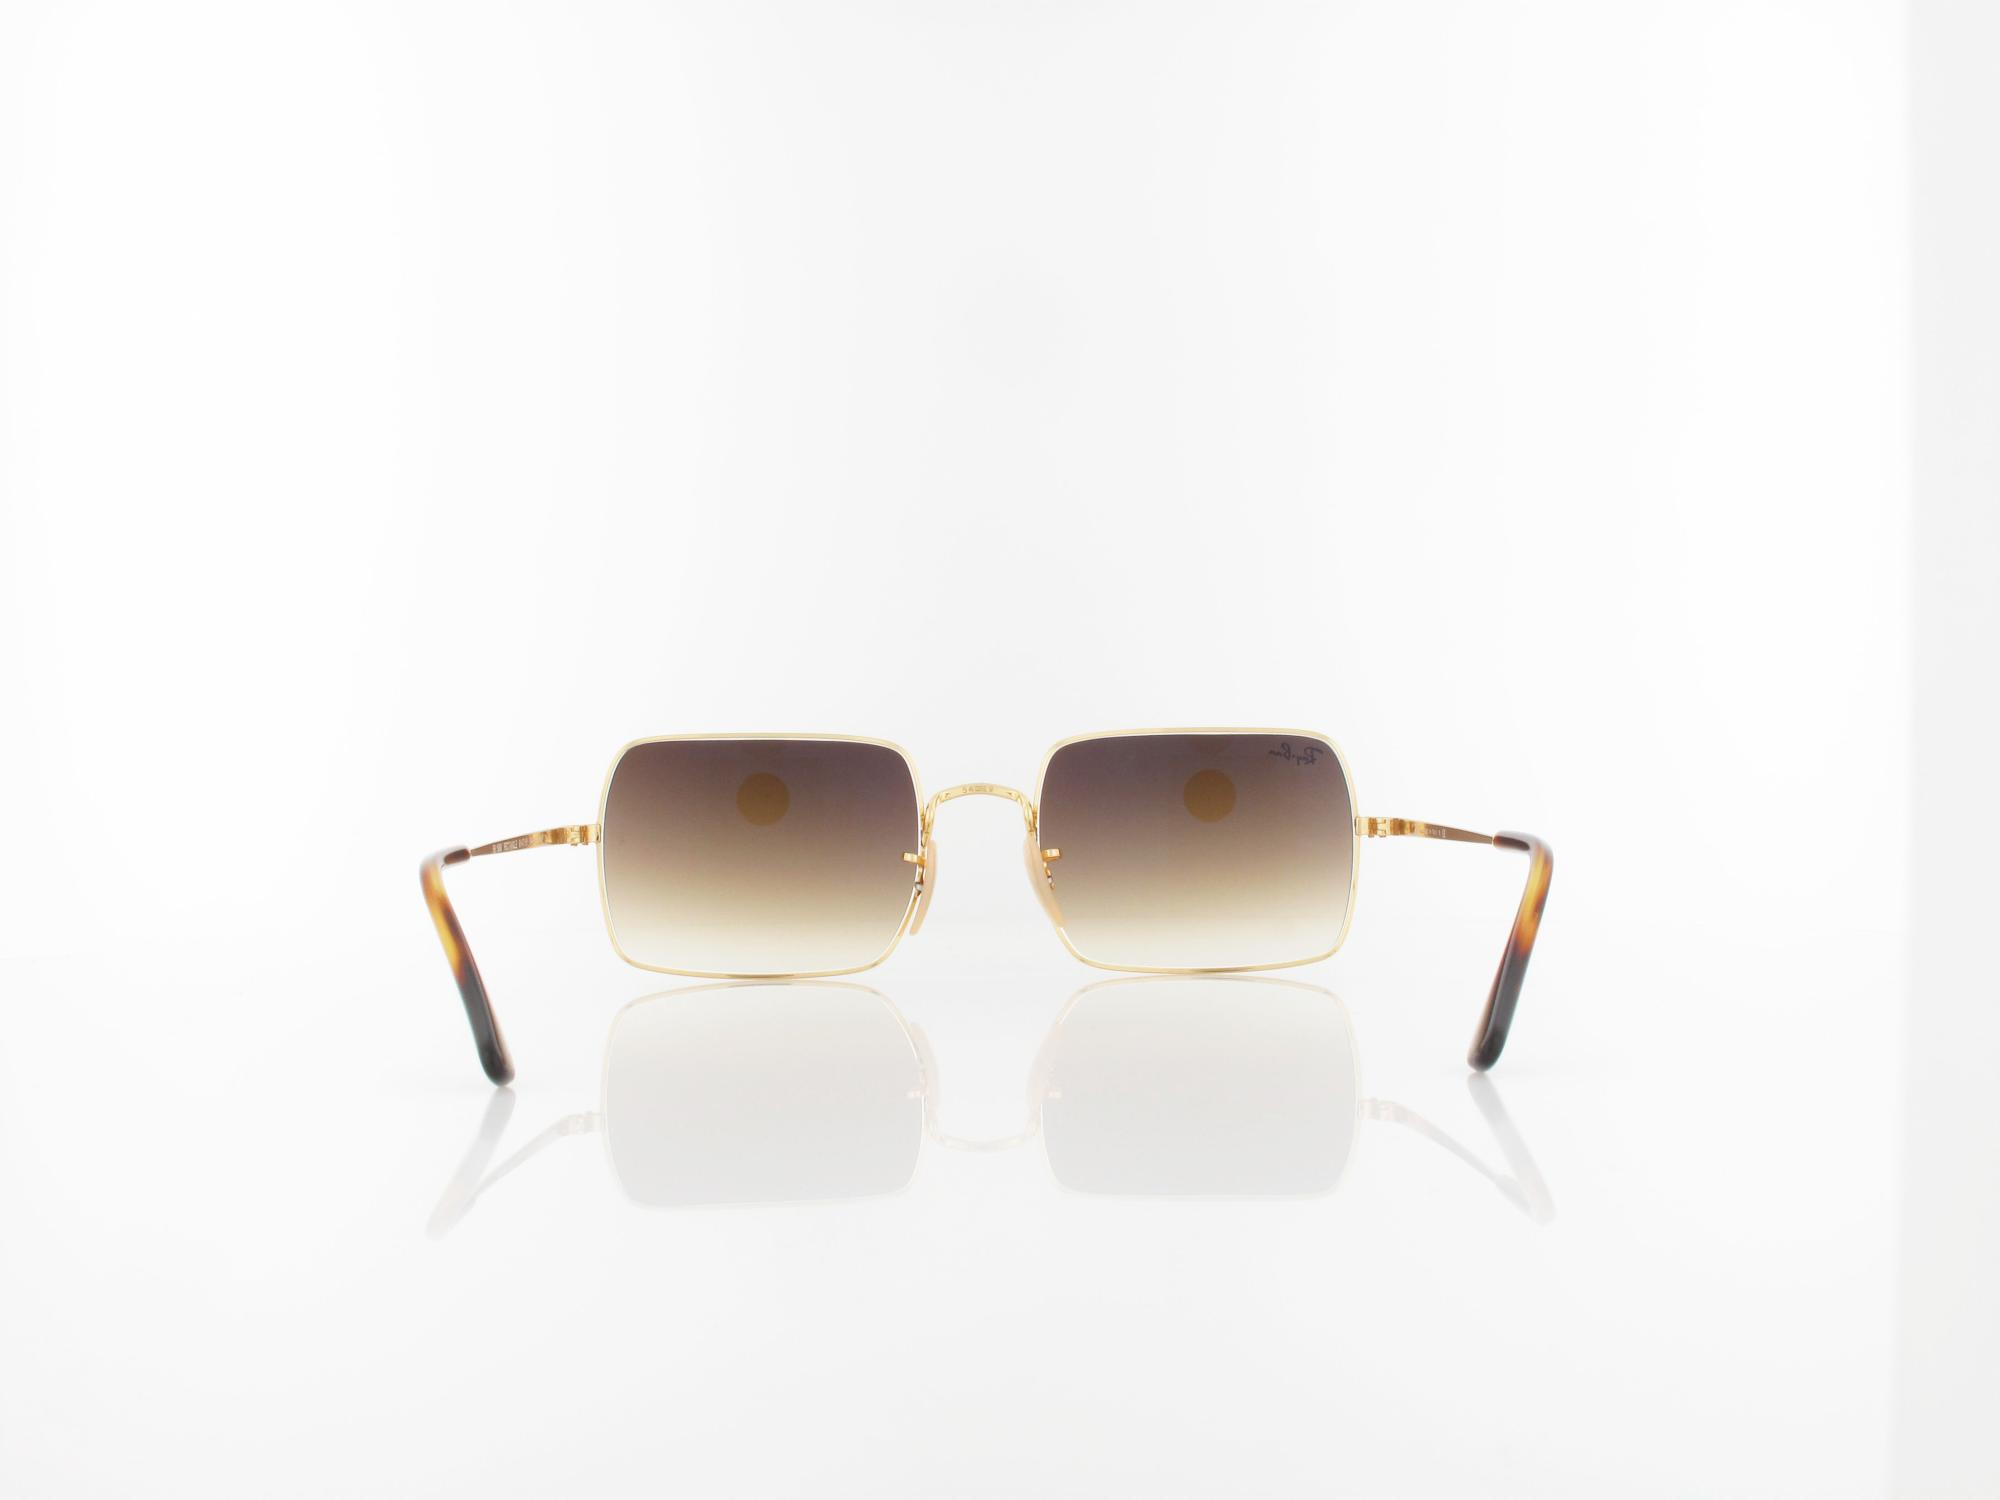 Ray Ban | RB1969 914751 54 | gold / clear gradient brown